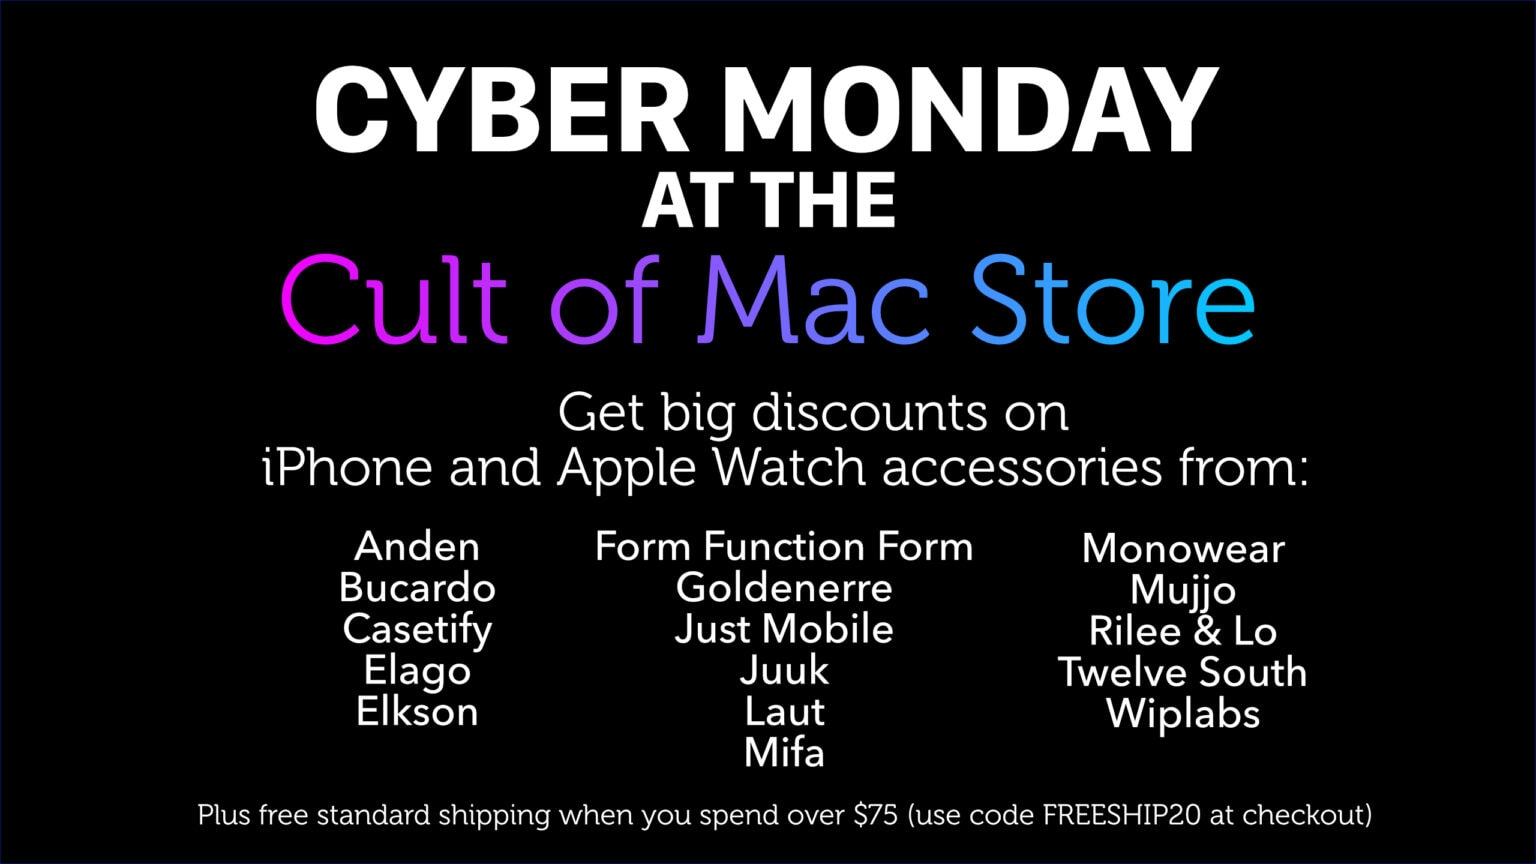 Cult of Mac Store Cyber Monday sale